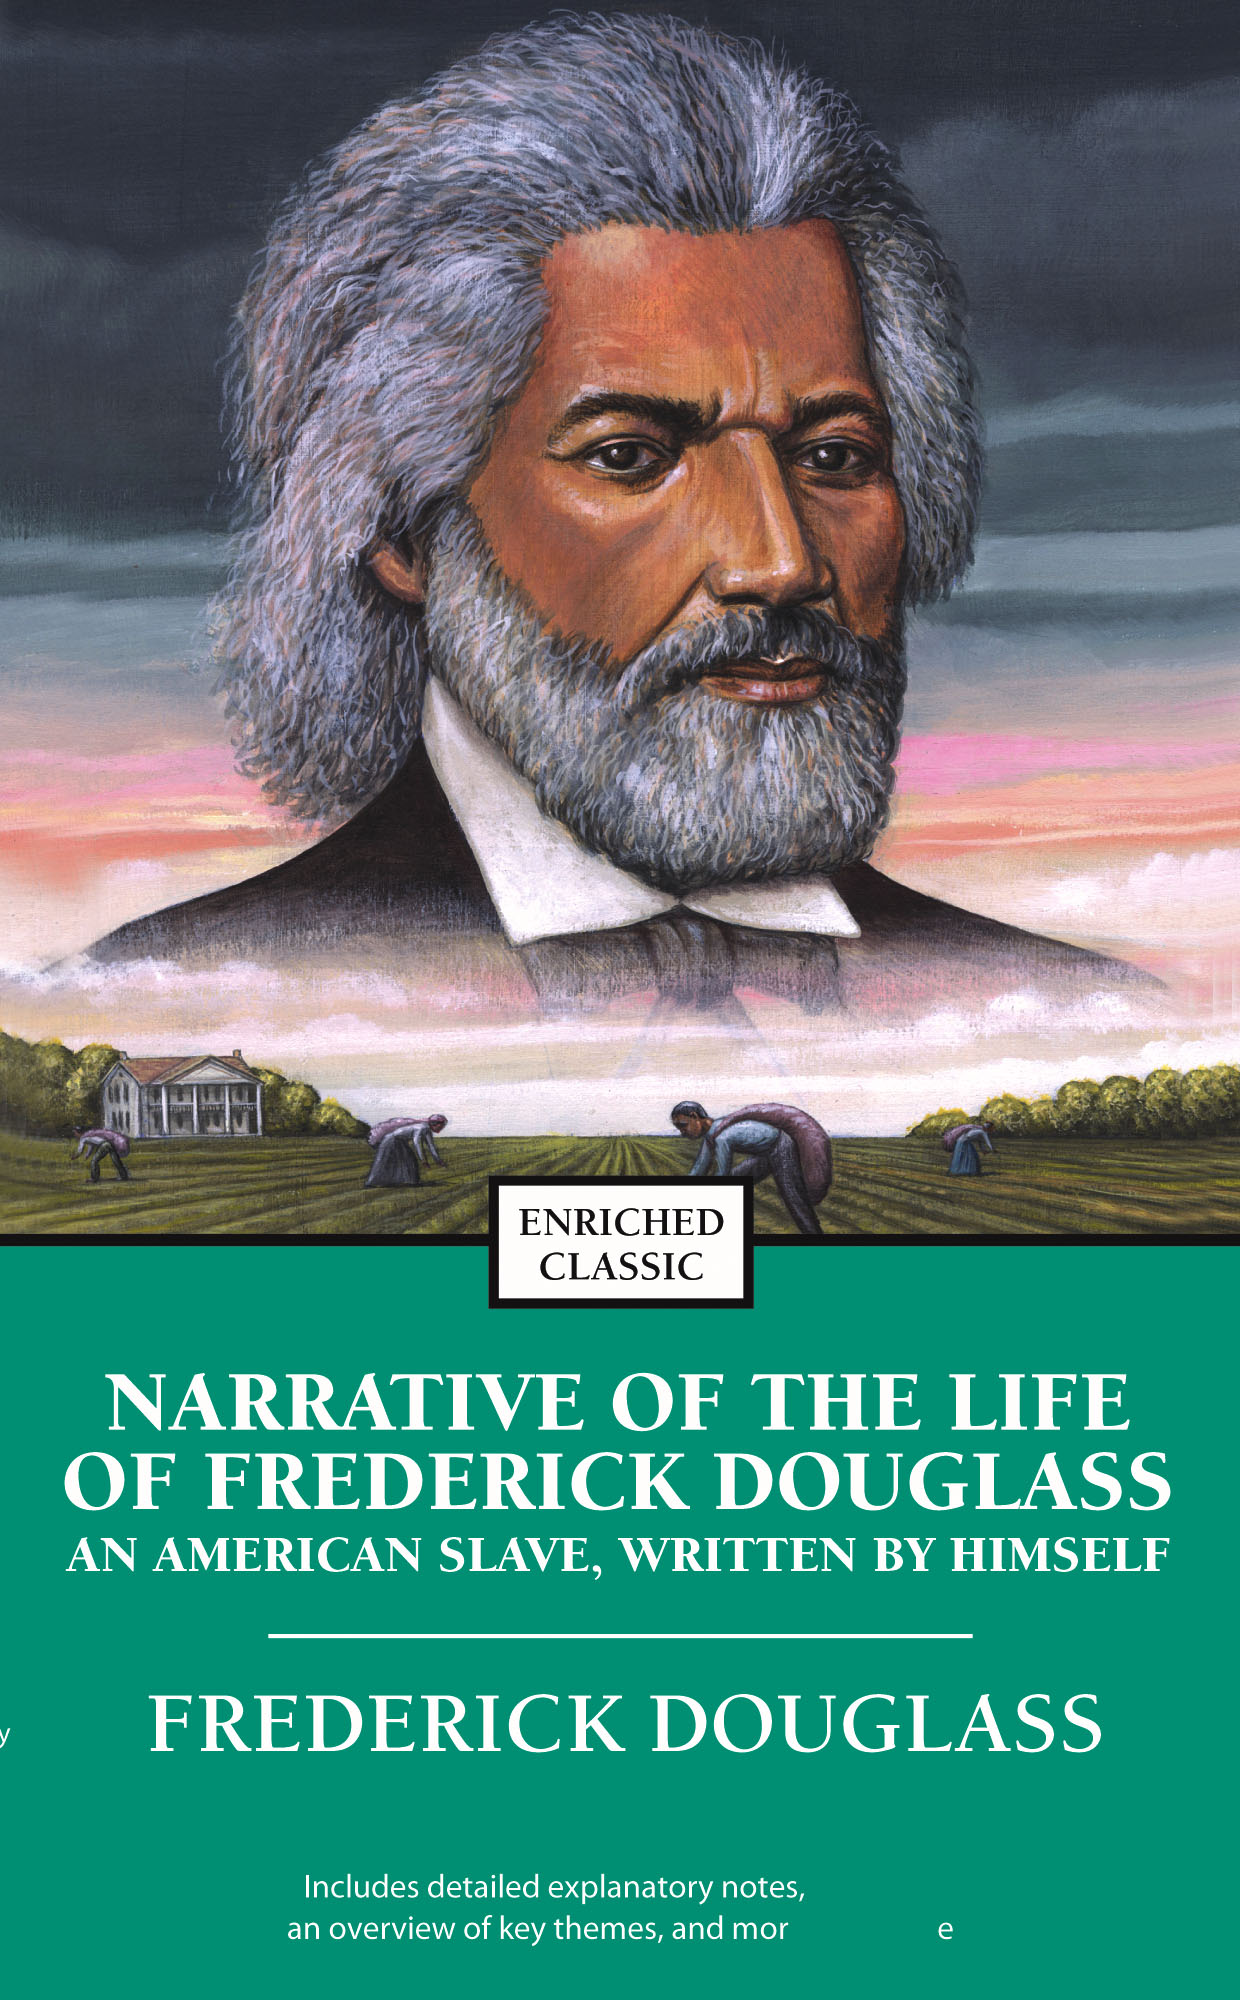 A literary analysis of slavery by frederick douglass